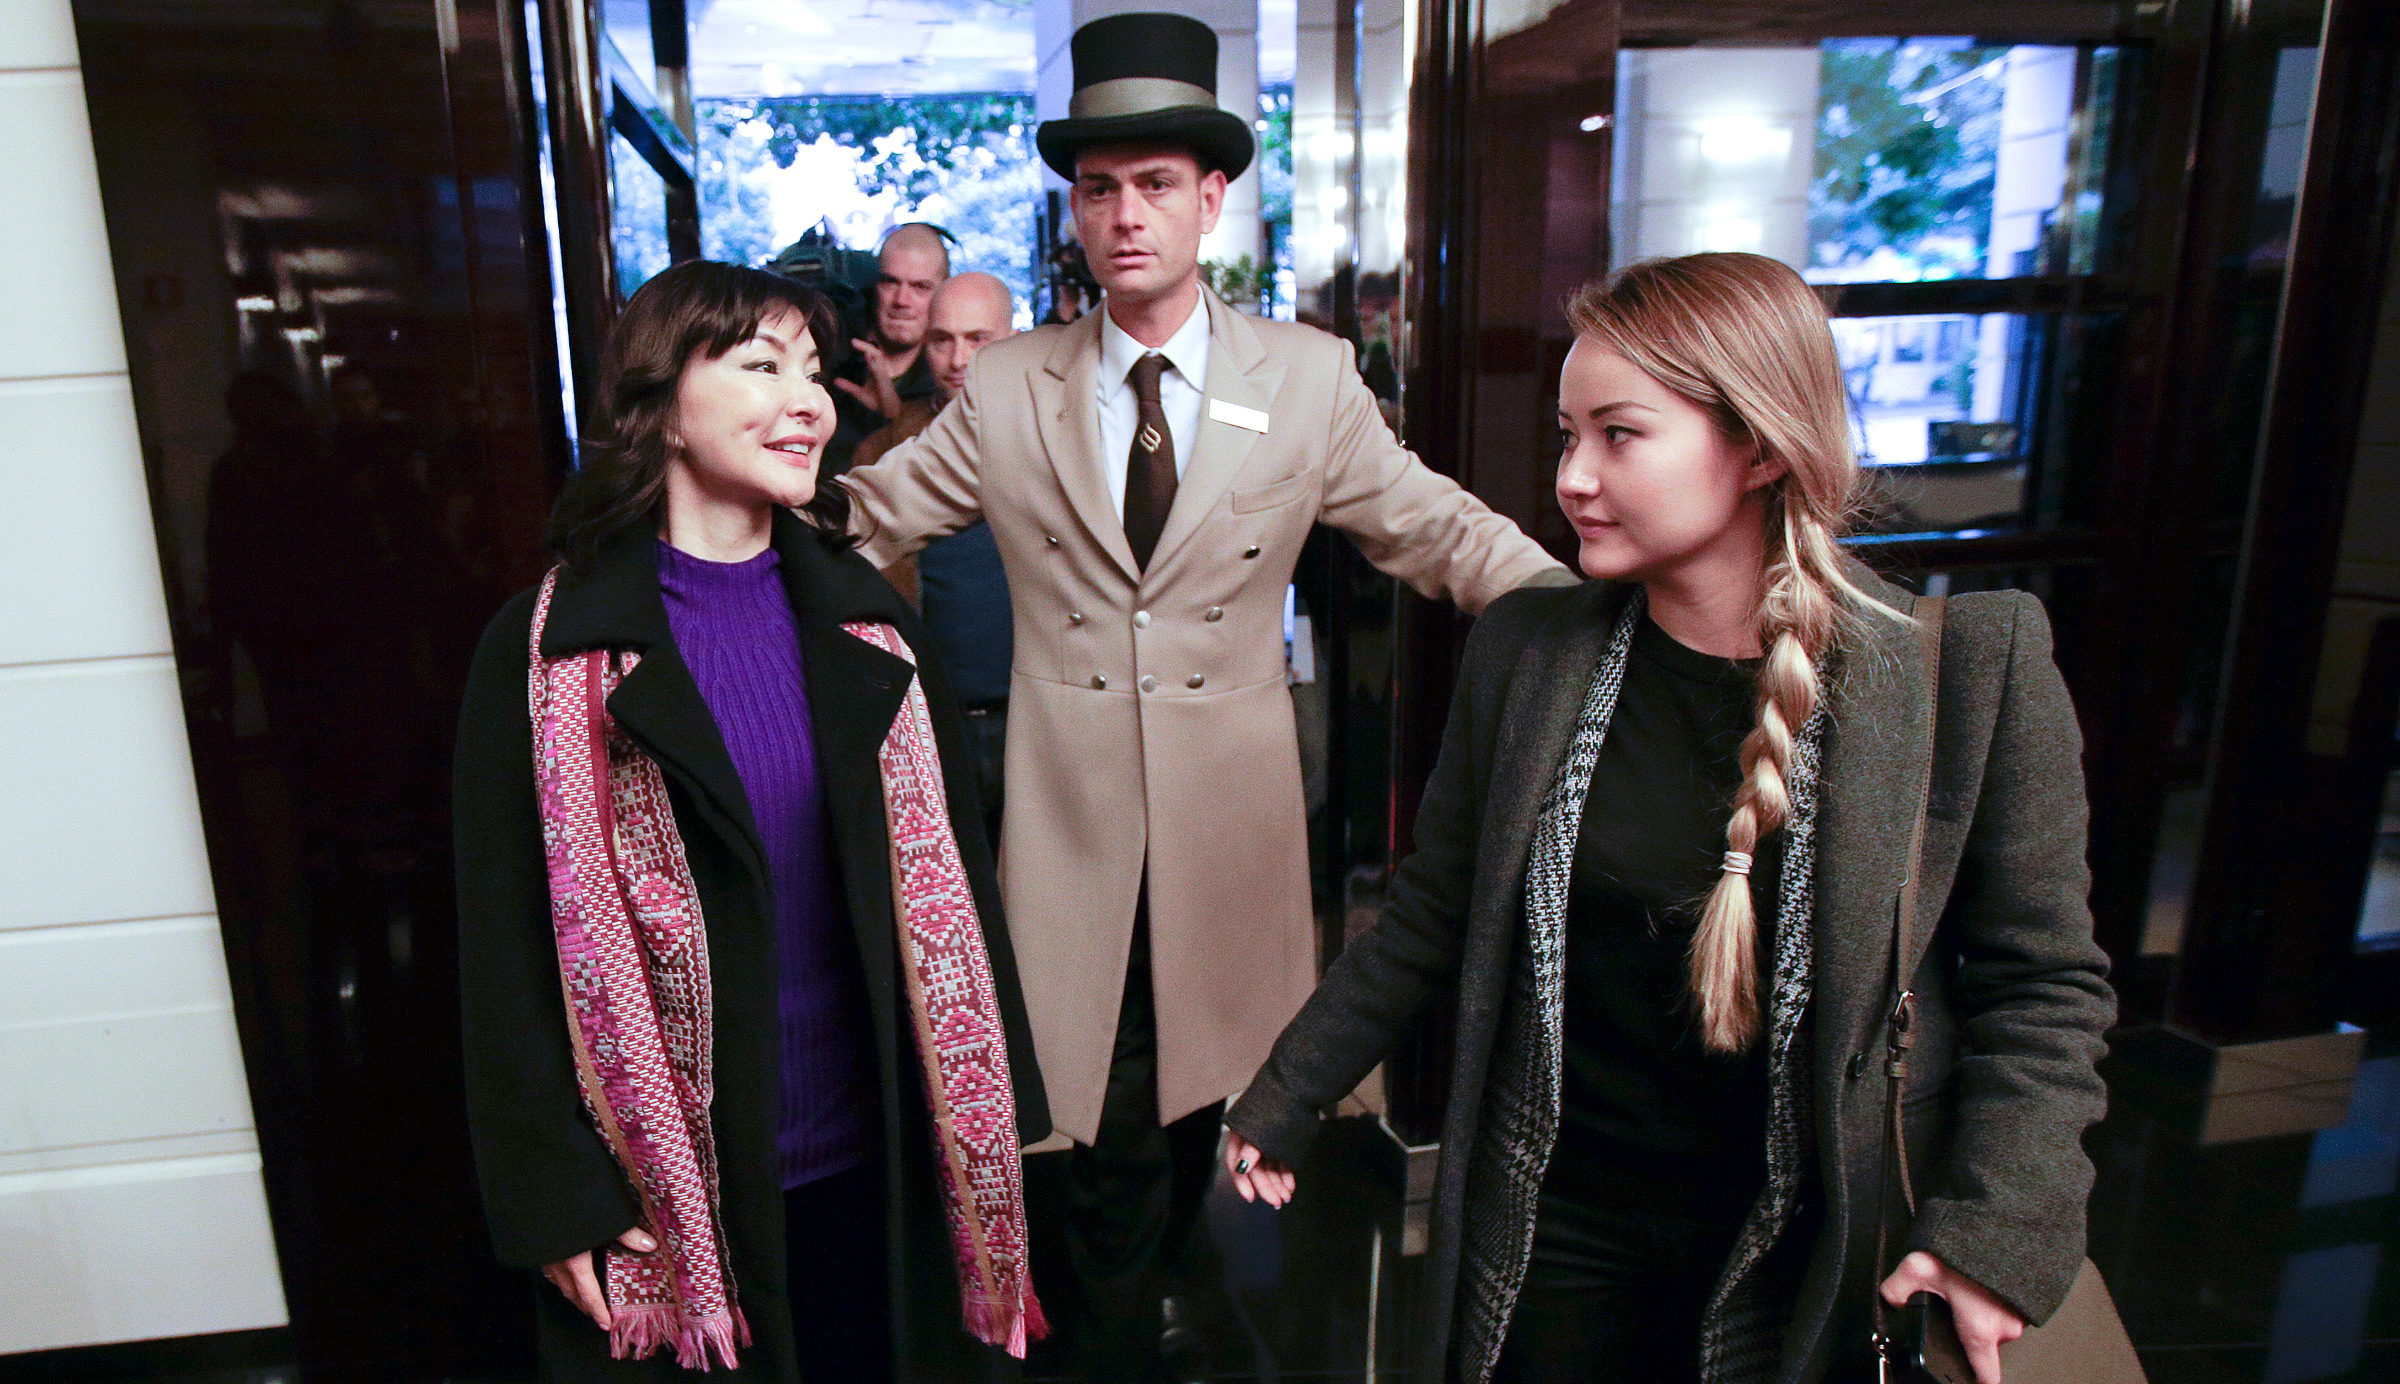 Alma Shalabayeva (L), the wife of exiled oligarch Mukhtar Ablyazov, arrives with her daughter Madina to lead a news conference in Rome December 27, 2013. Ablyazov was accused of embezzling millions of dollars from his former bank and as a result, Shalabayeva and Madina had been expelled from Rome, where they had been living, in a lightning operation in June. Shalabayeva thanked Italy on Tuesday for helping her to overturn the travel ban and persuade the Kazakh government to allow her return to Europe, the Italian foreign ministry said.